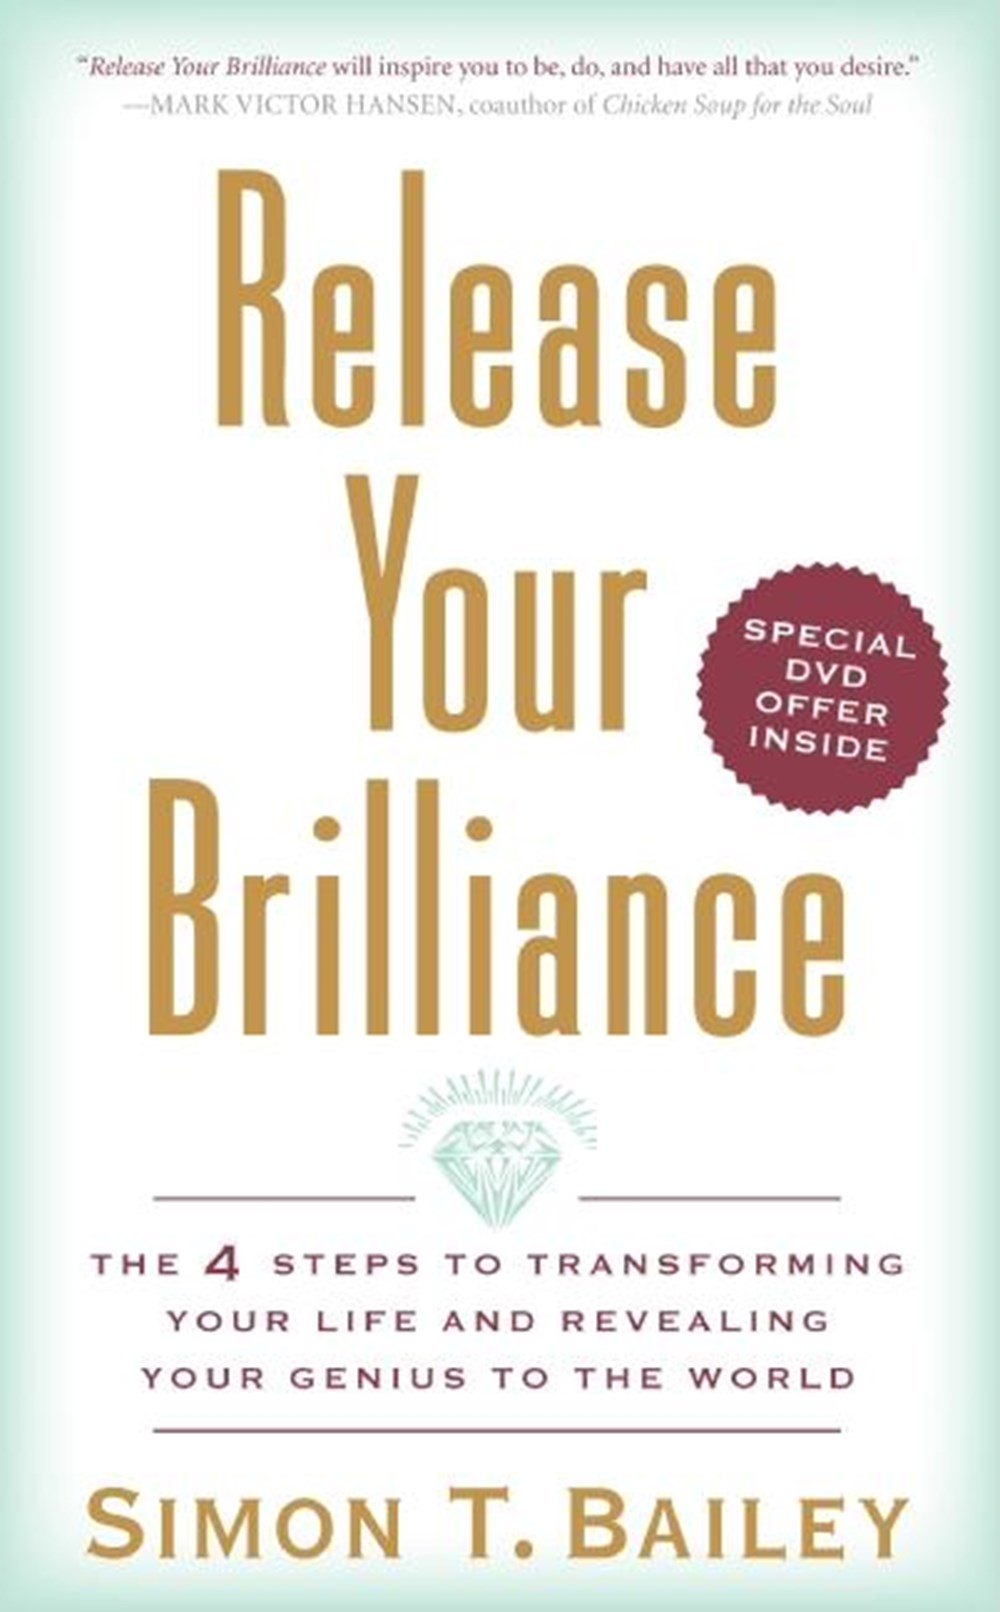 Release Your Brilliance The 4 Steps to Transforming Your Life and Revealing Your Genius to the World